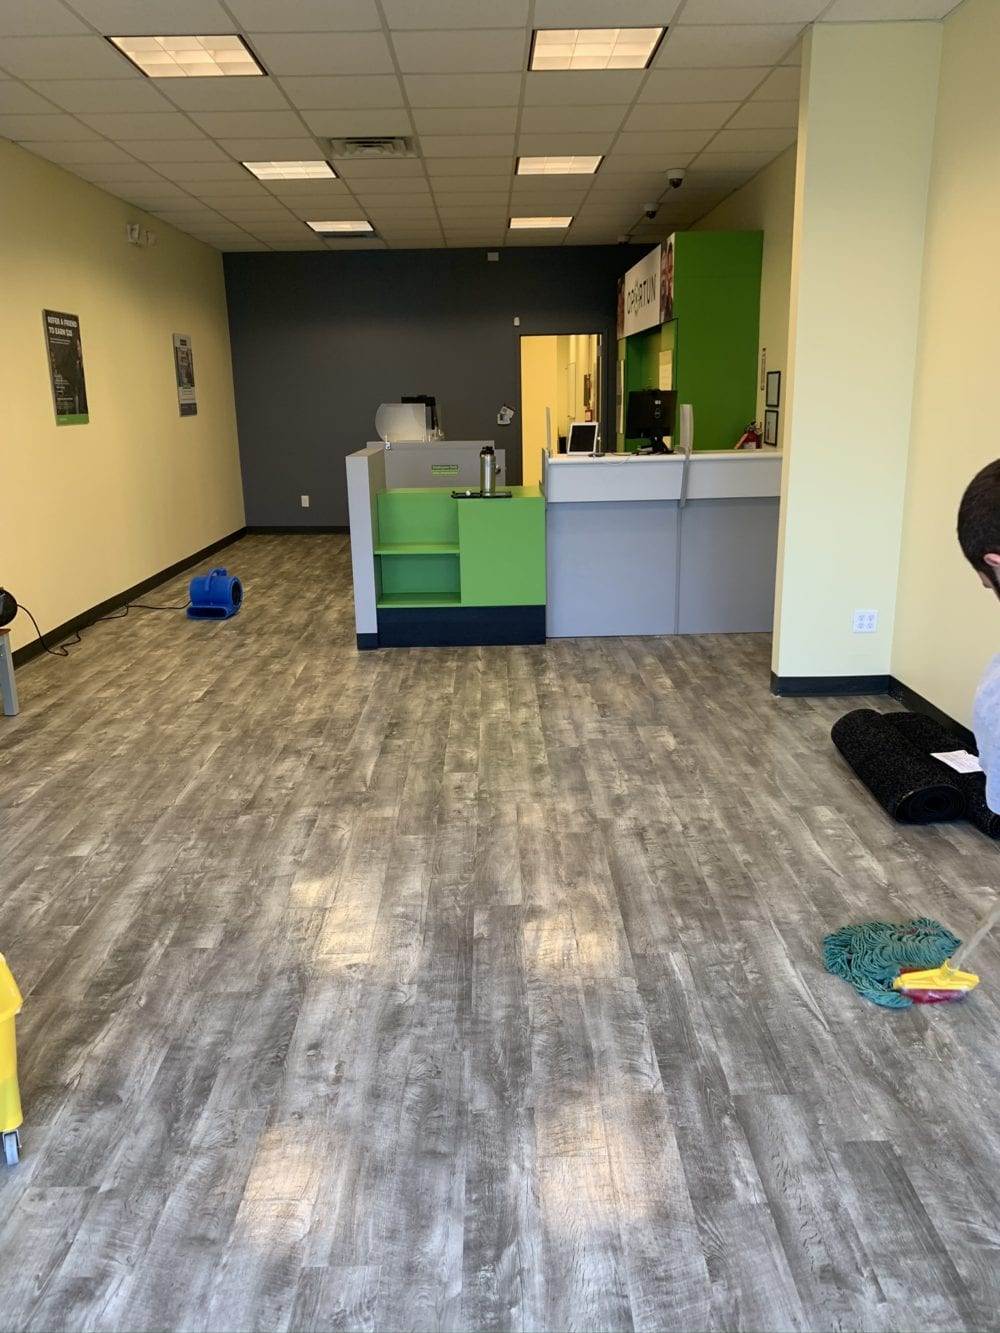 Retail Store Cleaning Jersey City New Jersey